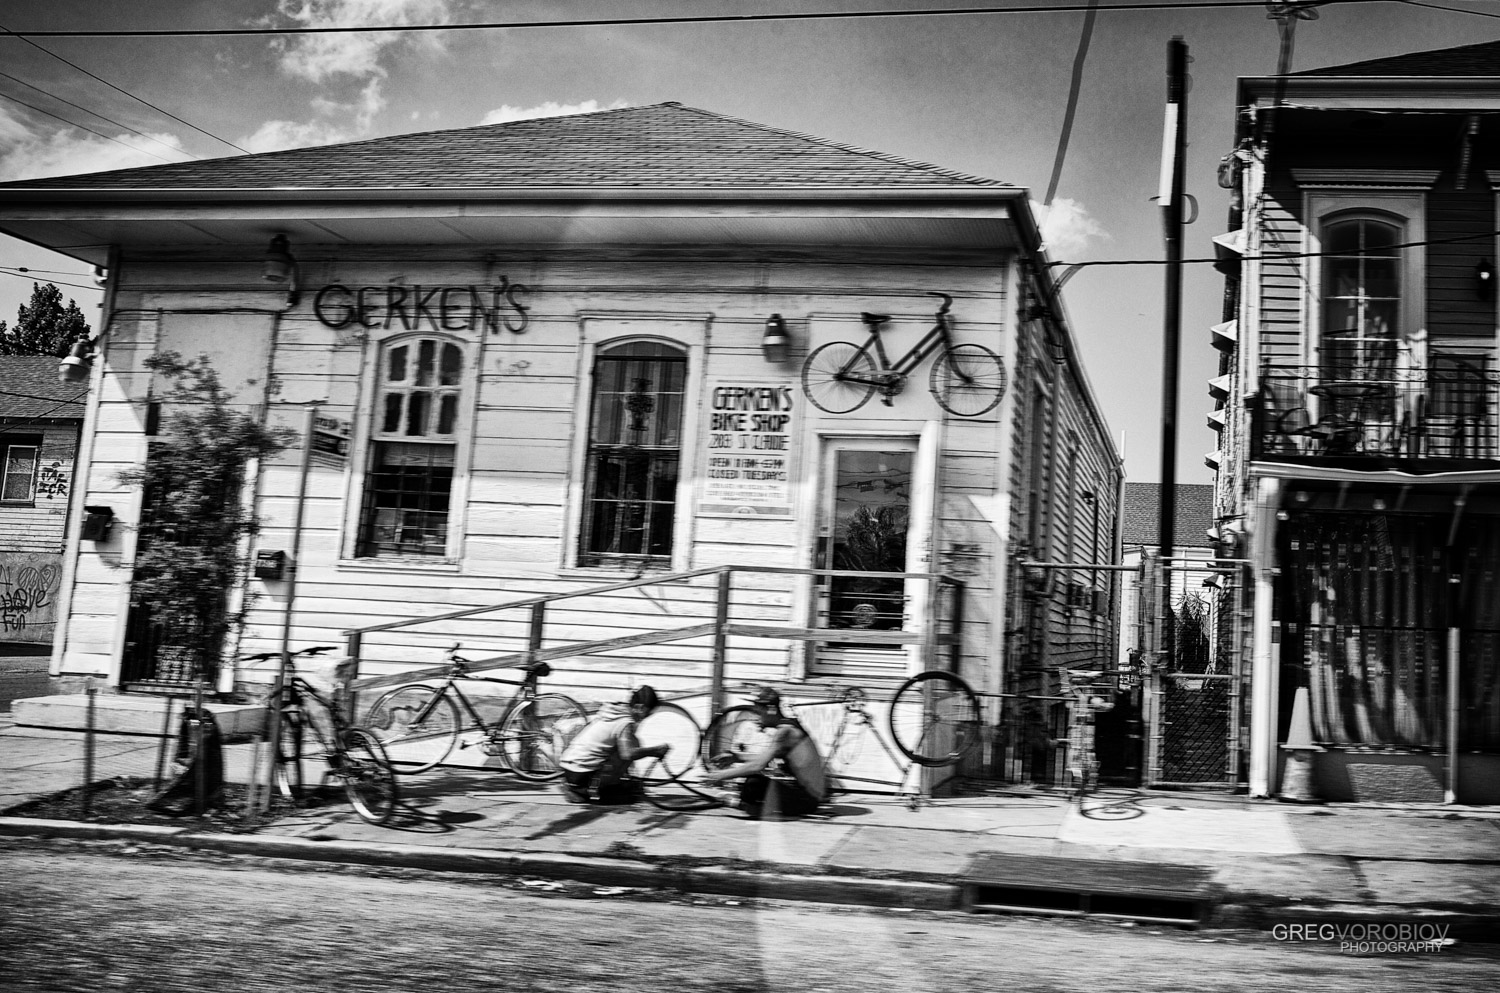 new_orleans_by_greg_vorobiov-2.jpg